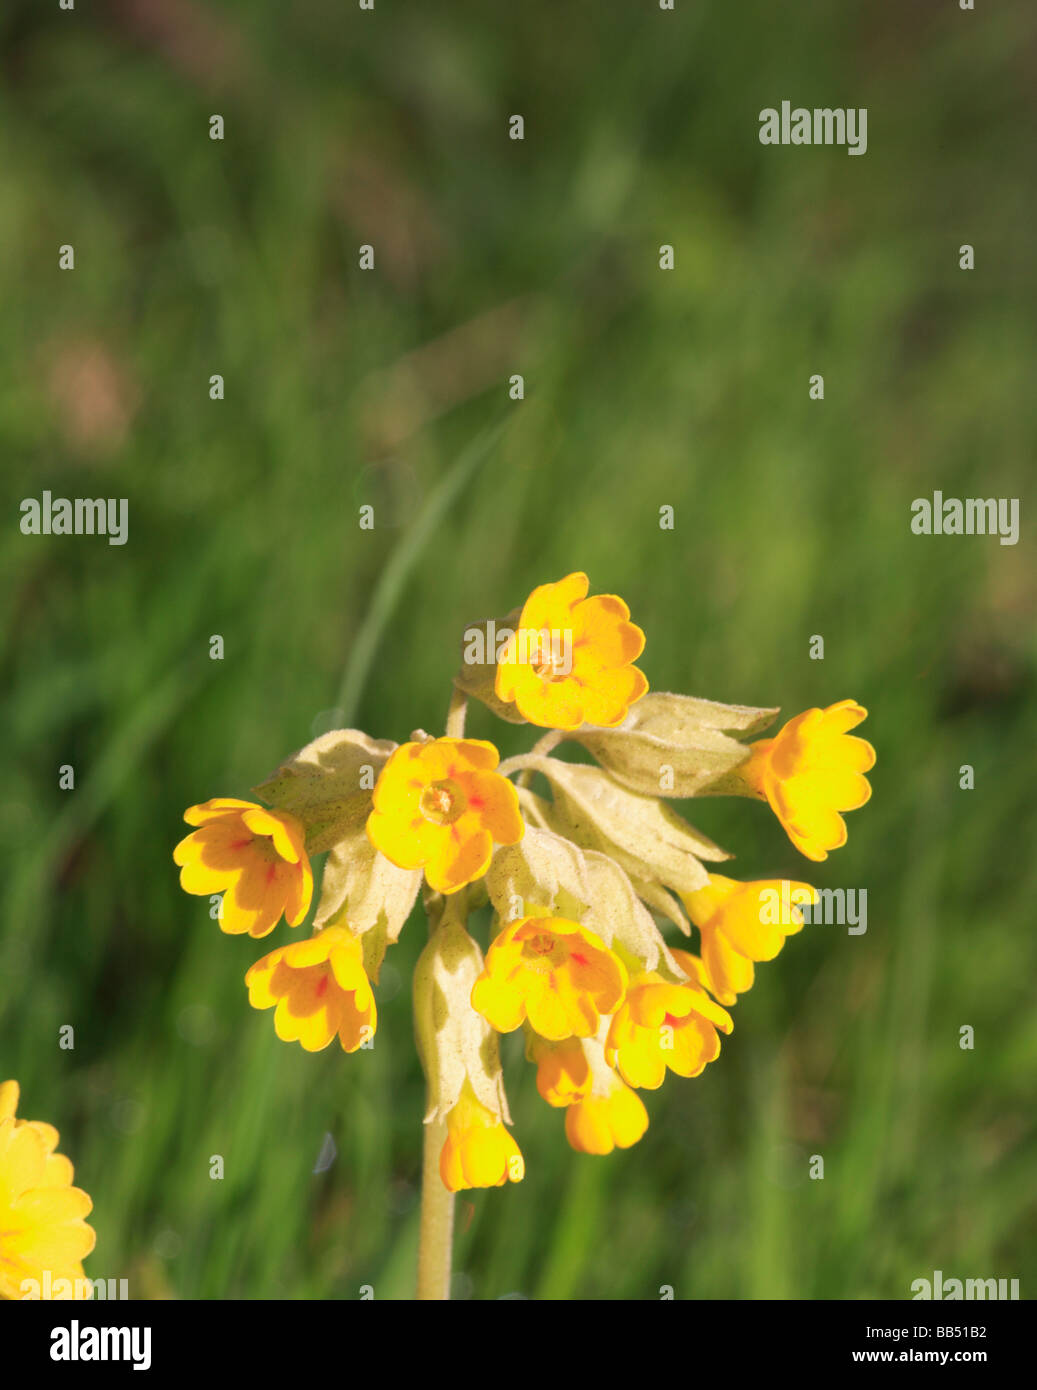 Detail of a single flower head of a Cowslip, Primula veris, in a country roadside verge in Norfolk, UK. Stock Photo